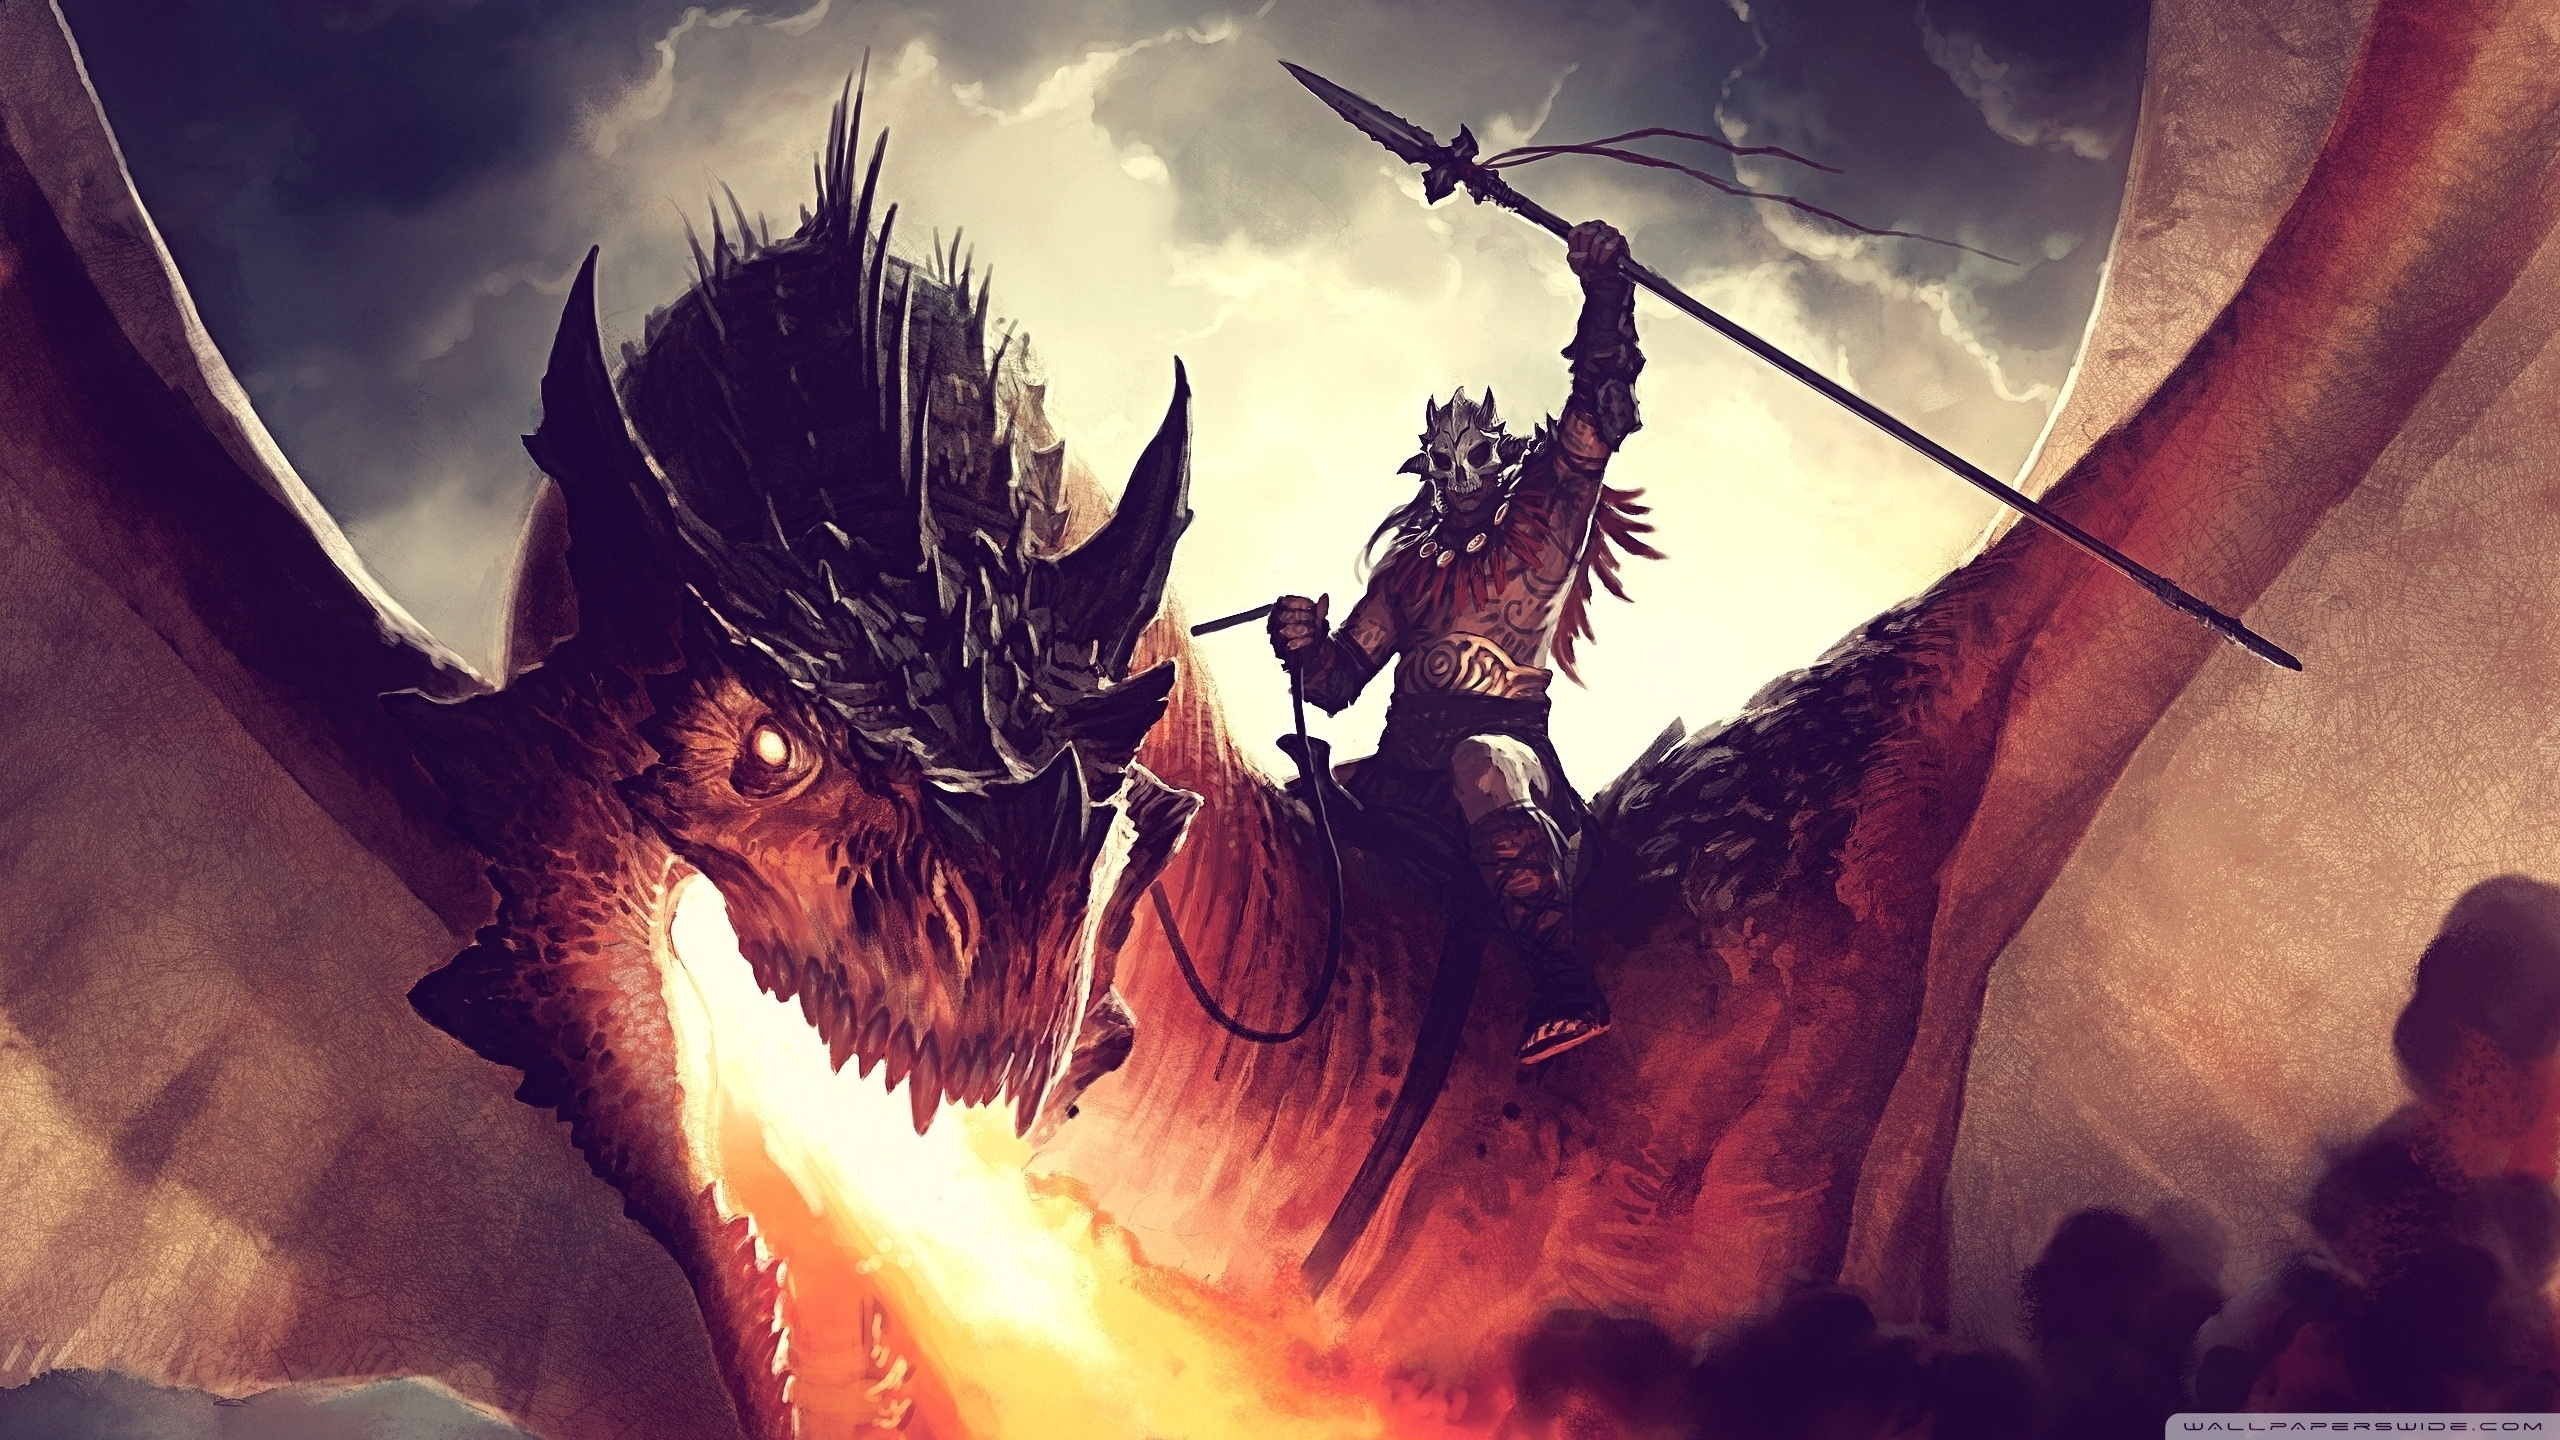 barbarian_riding_dragon.jpg